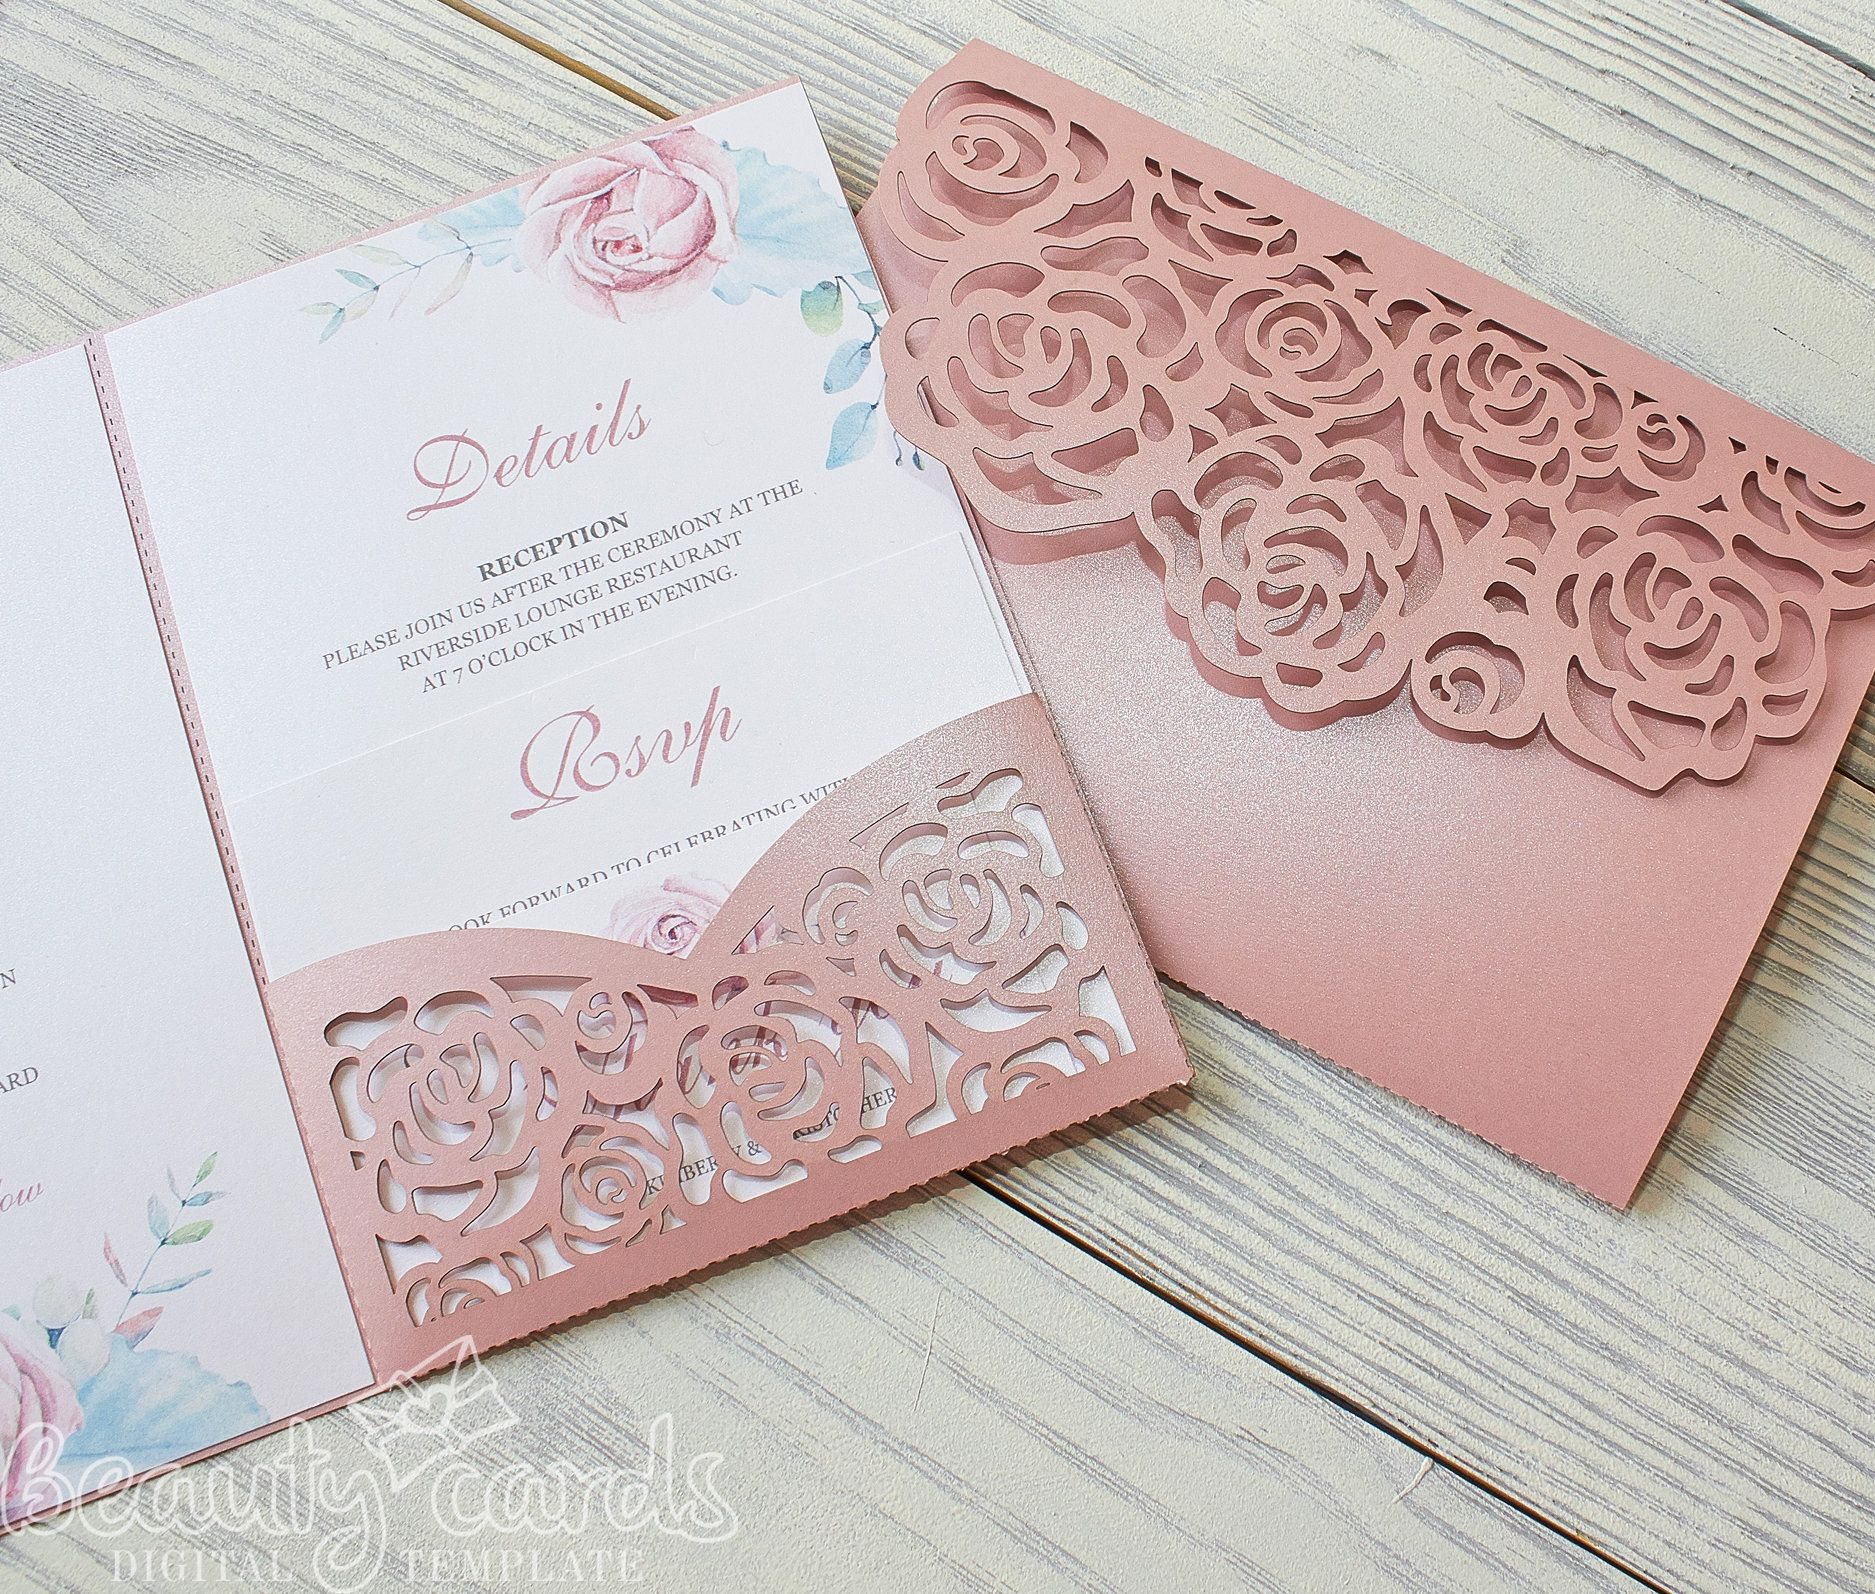 pin on wedding card invite ideas for jessica